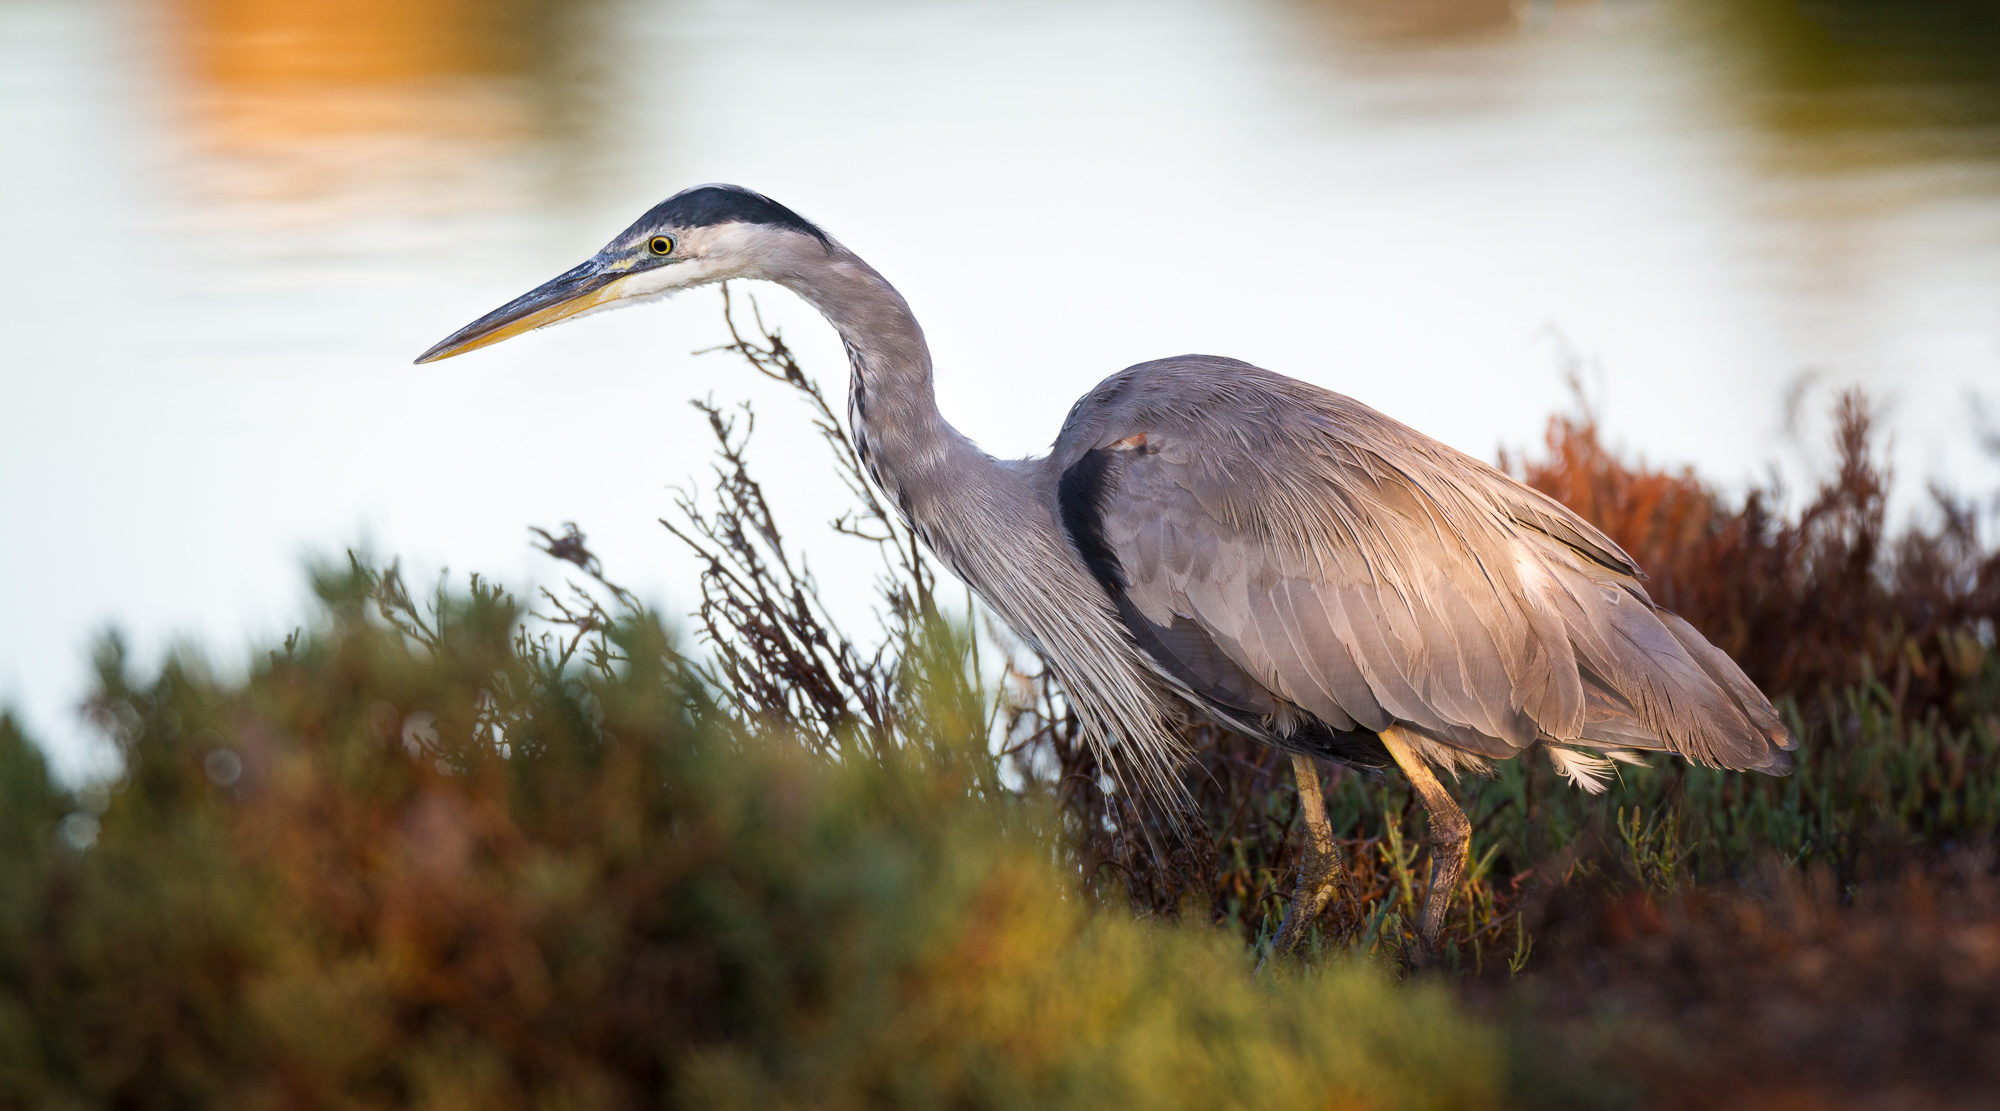 A great blue heron stands along the shore of a canal in early morning light